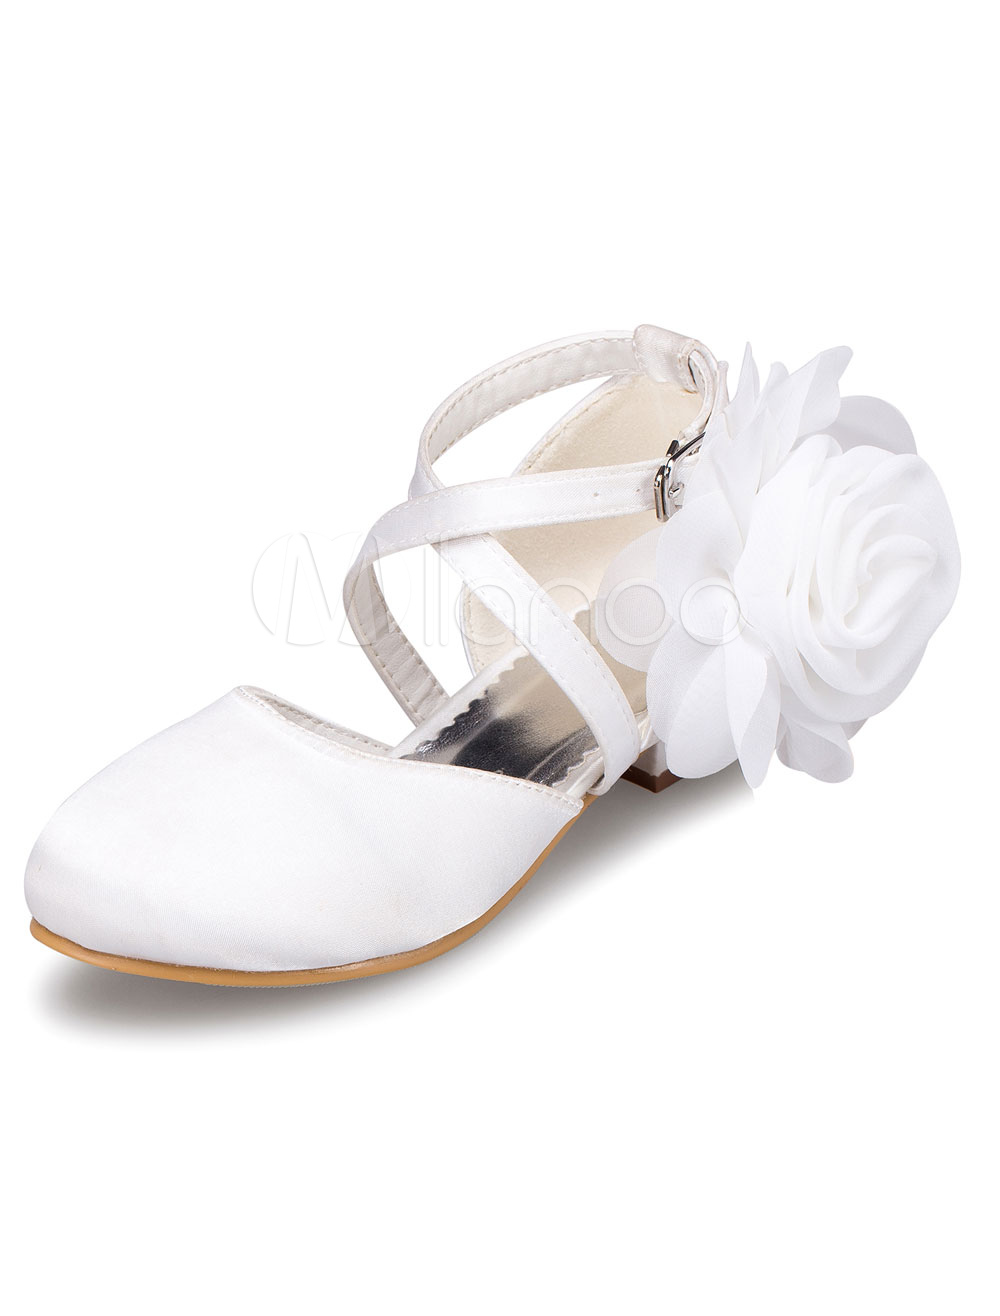 White Flower Girl Shoes Flowers Straps Satin Shoes For Girls